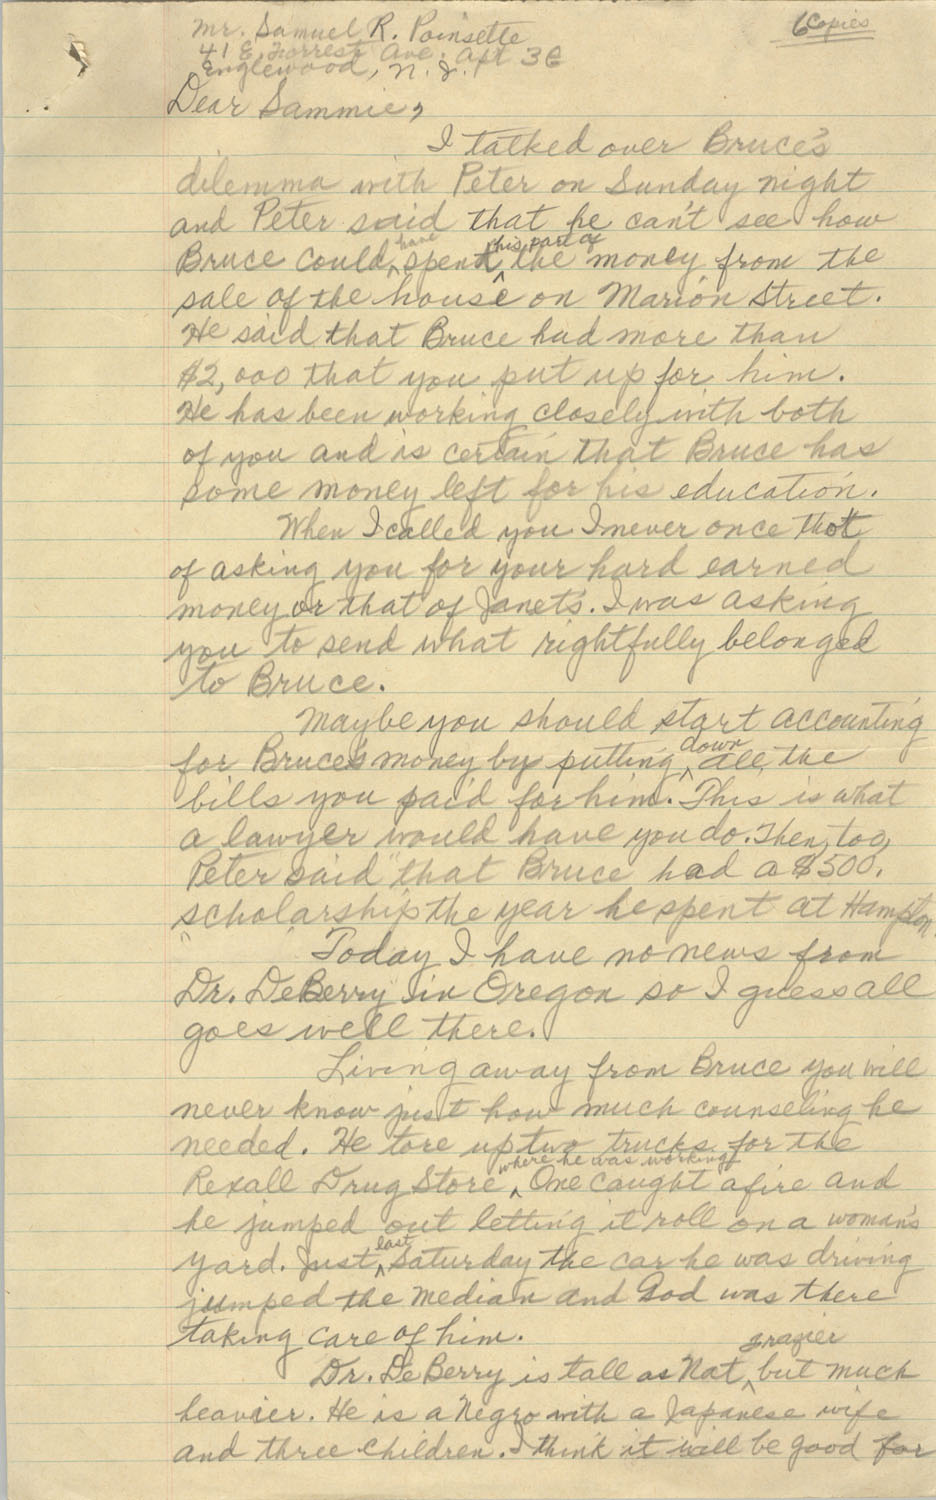 Letter from Septima P. Clark to Samuel R. Poinsette